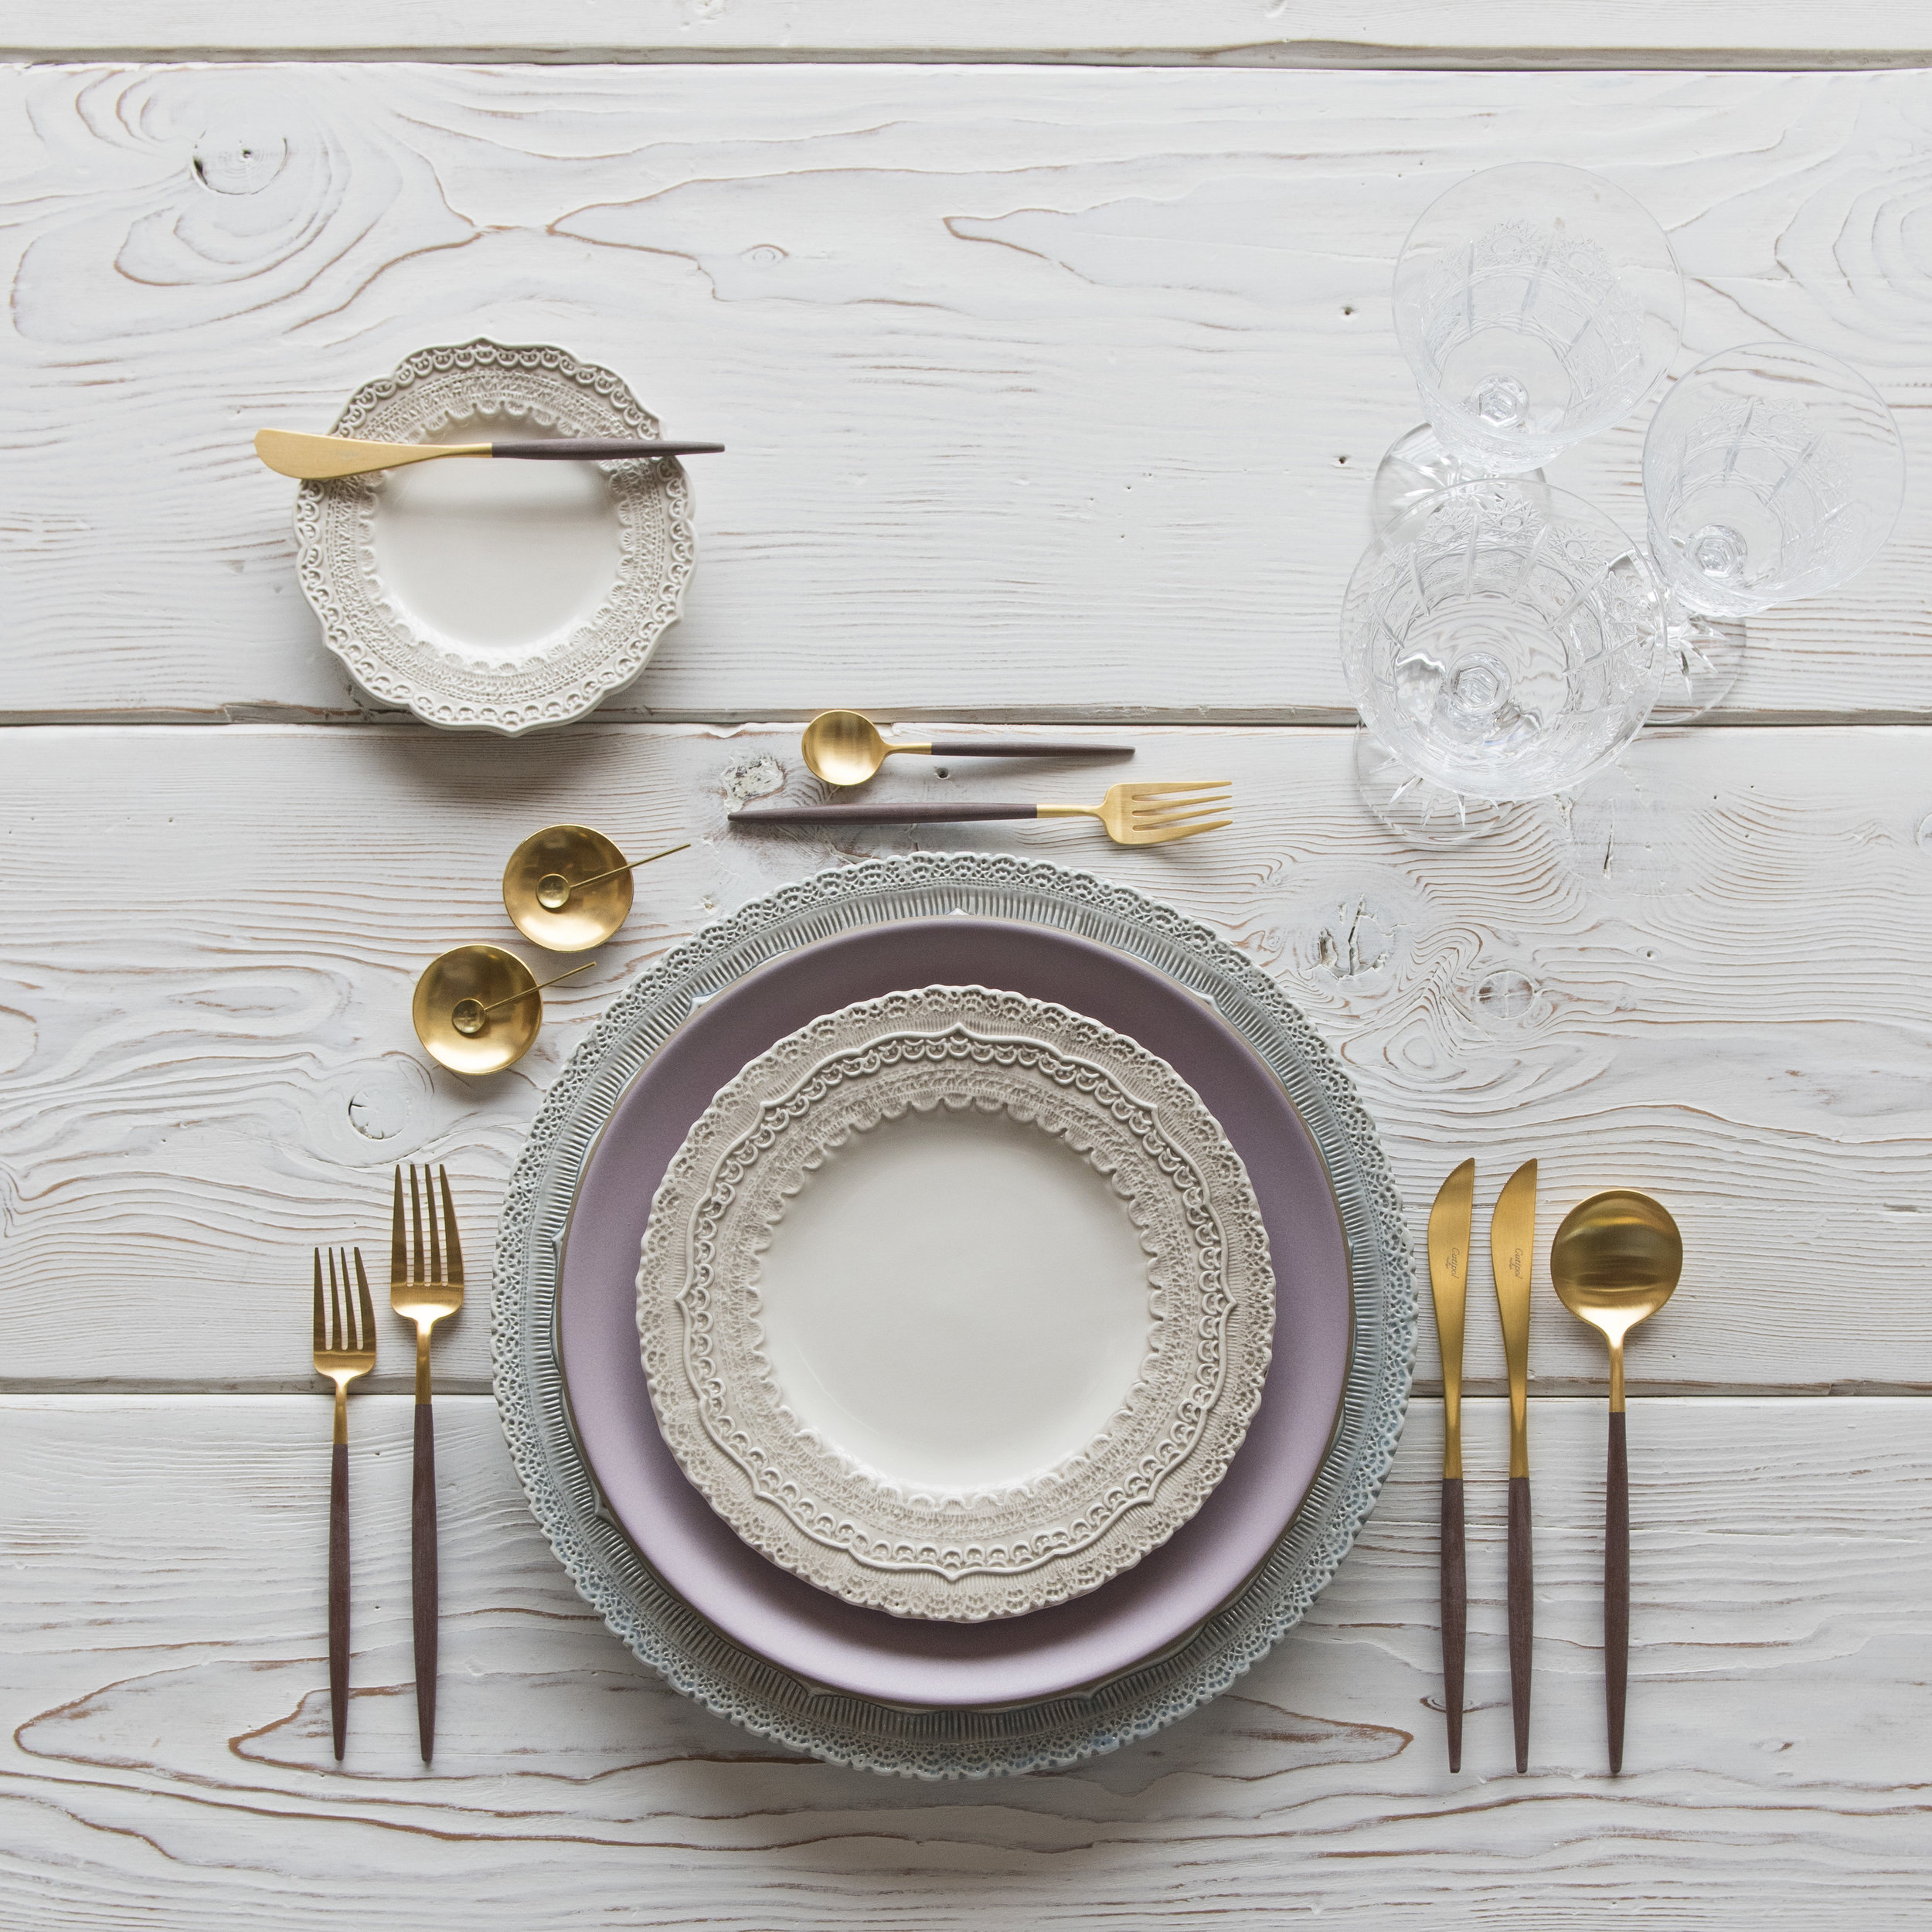 RENT: Lace Chargers in Dusty Blue + Custom Heath Ceramics in Wildflower + Lace Dinnerware in White + Goa Flatware in Brushed 24k Gold/Wood + Czech Crystal Stemware + 14k Gold Salt Cellars + Tiny Gold Spoons  SHOP:Goa Flatware in Brushed 24k Gold/Wood + 14k Gold Salt Cellars + Tiny Gold Spoons